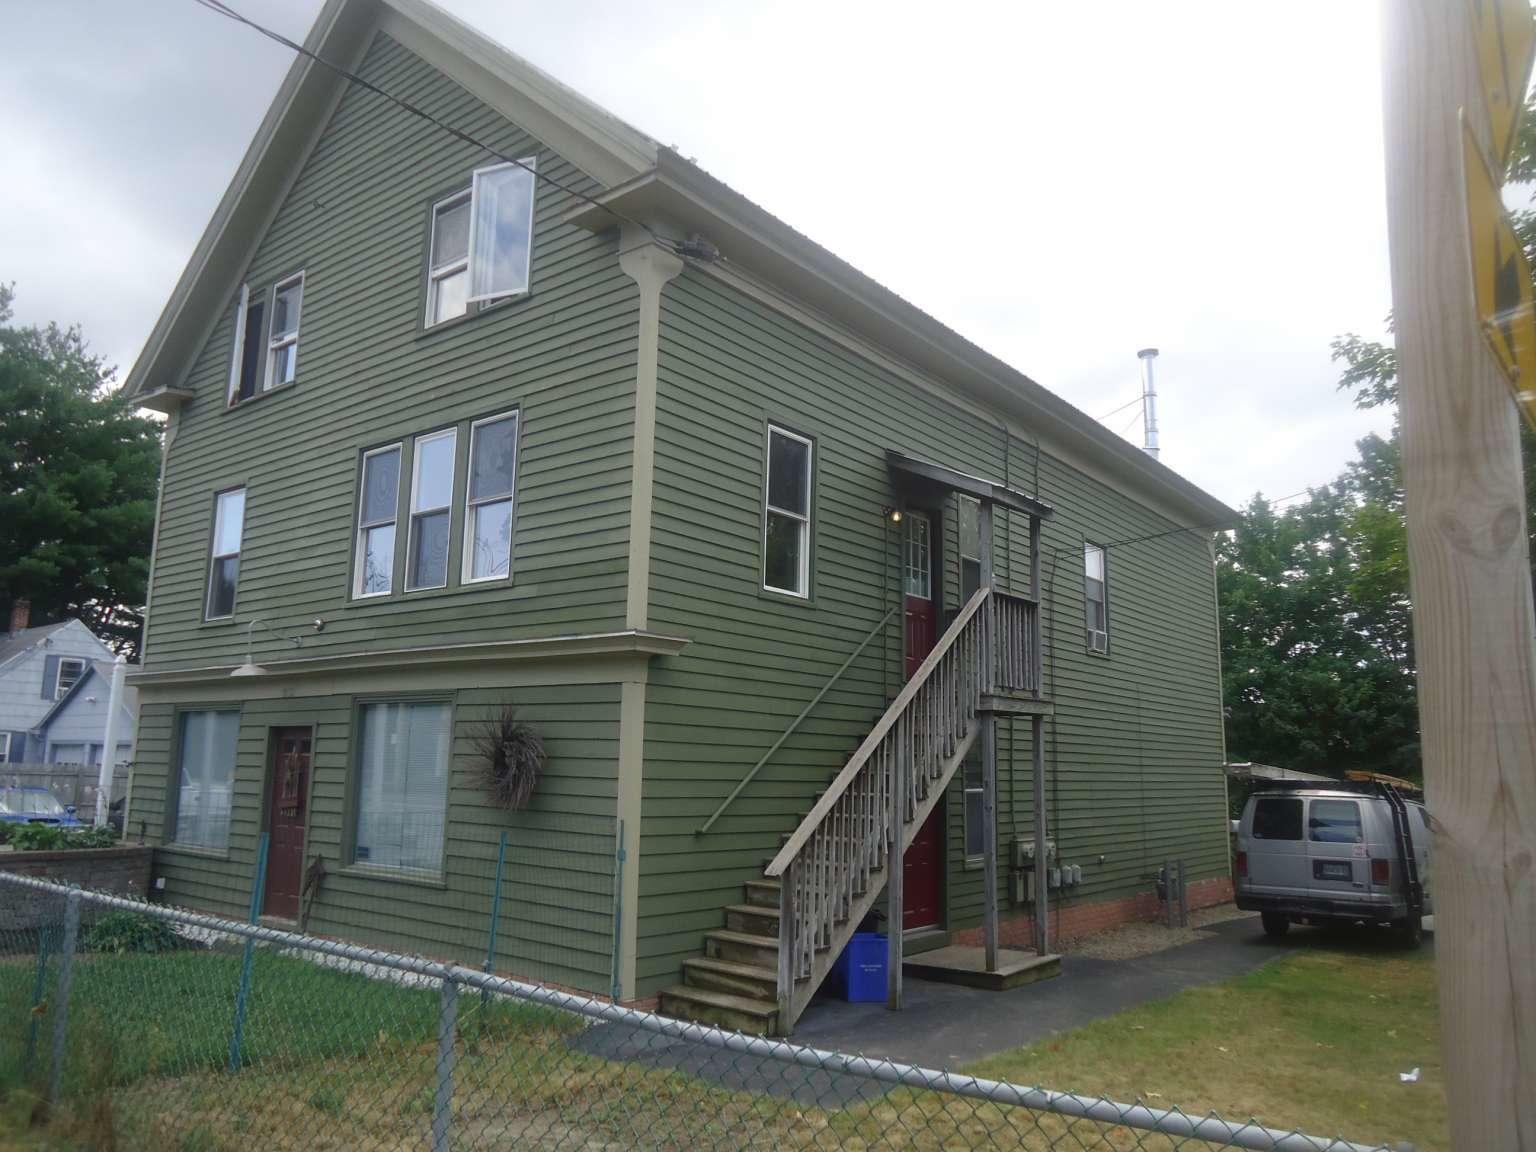 Main image for MLS listing 1490178